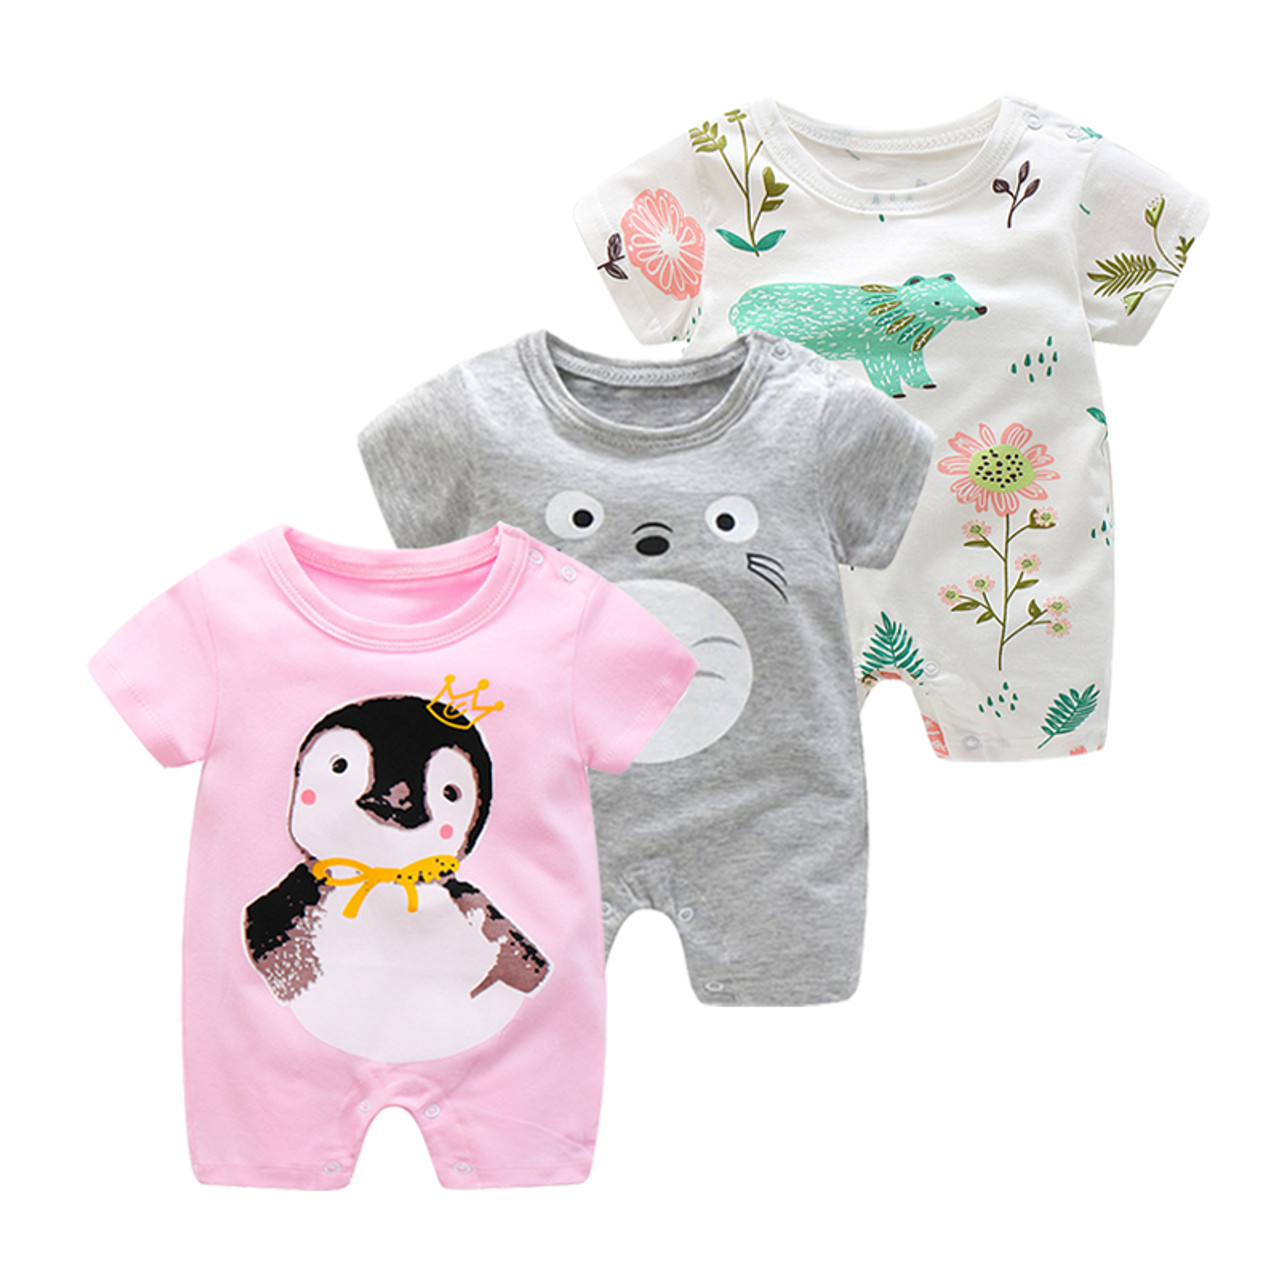 148f10c692f2 ... Summer Newborn Baby Jumpsuit Infant Crawling Short Sleeve Cotton  Rompers Baby Pajamas Cartoon Animal Clothes For ...